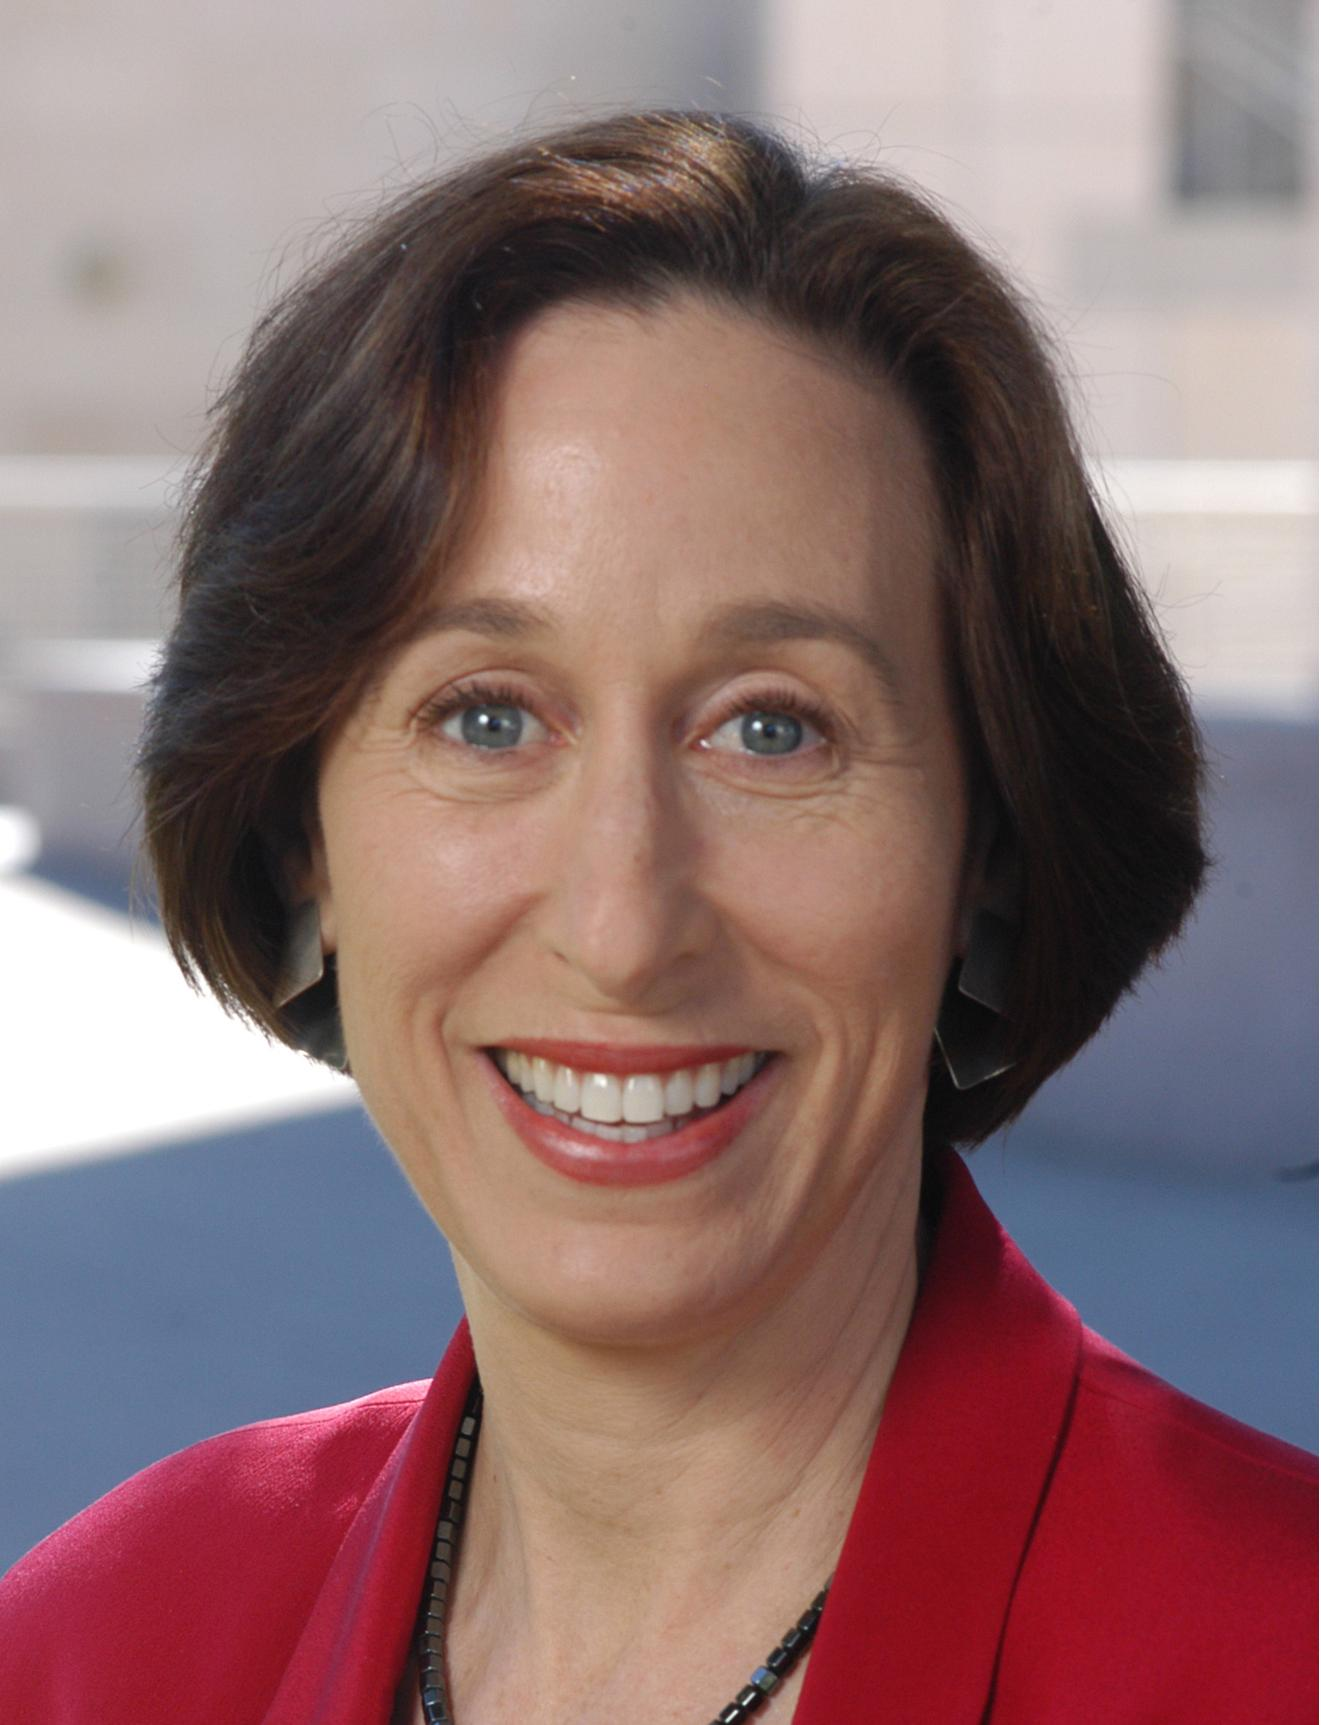 Dr. Tina Seelig, Executive Director, Stanford Technology Ventures Program